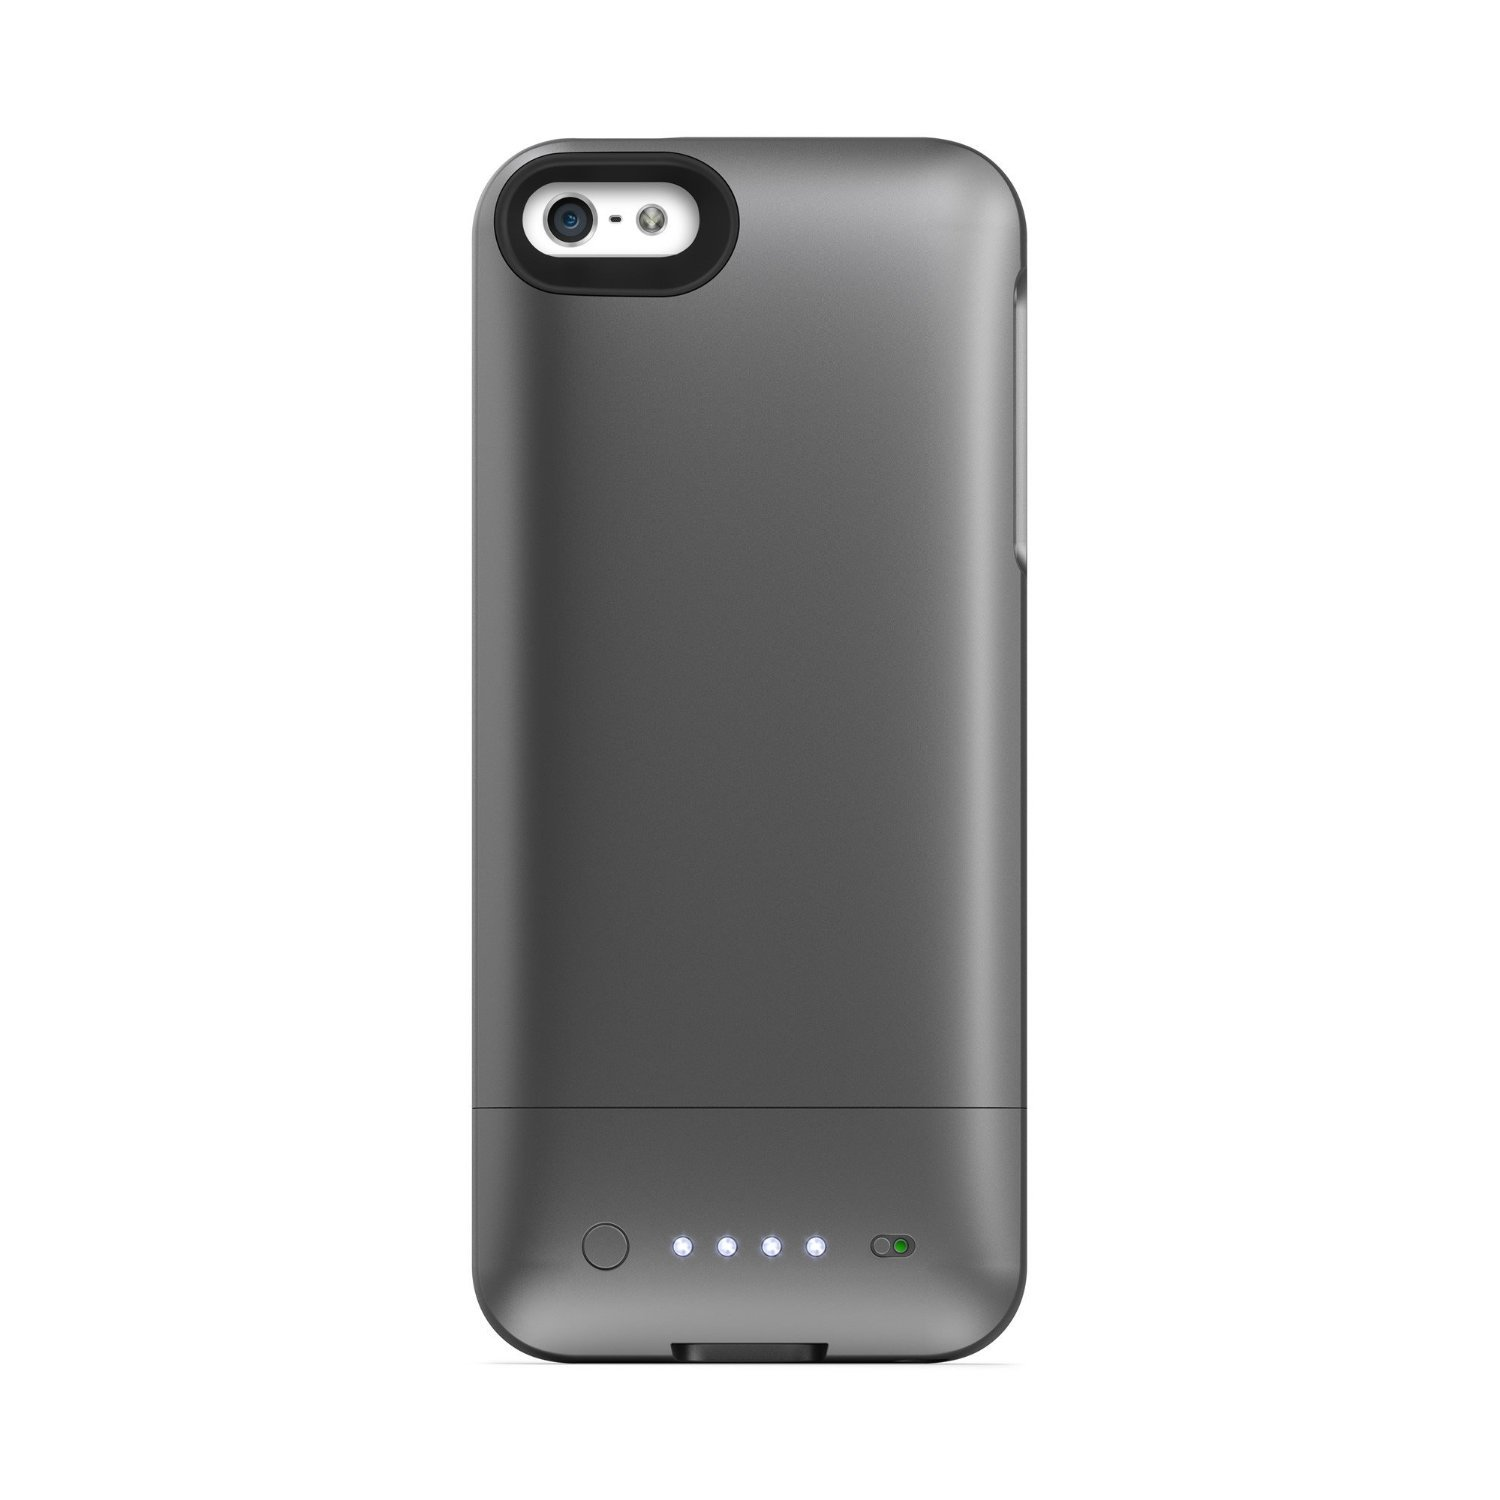 Mophie Juice Pack Helium Battery Case for iPhone 5: Amazon